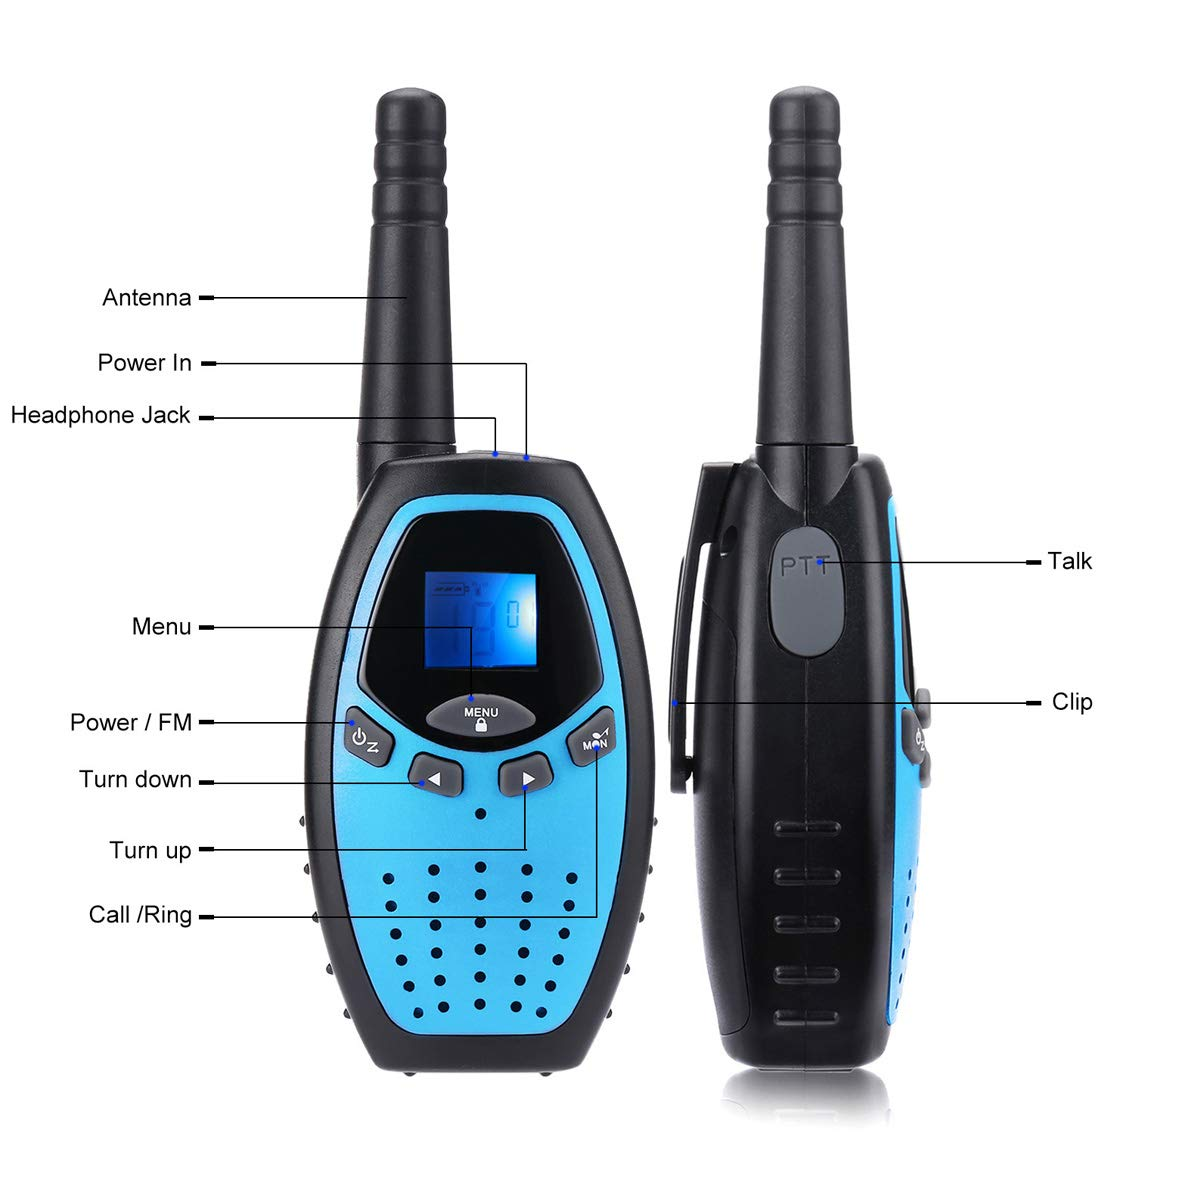 Fistone Walkie Talkies for Kids, 3 Packs 22 Channels 2 Way Radio Long Range Interphone Toys for Boy & Girls Age 3 6 7 8 9 12 Up for Outdoor Adventures, Camping, Hiking by Fistone (Image #2)